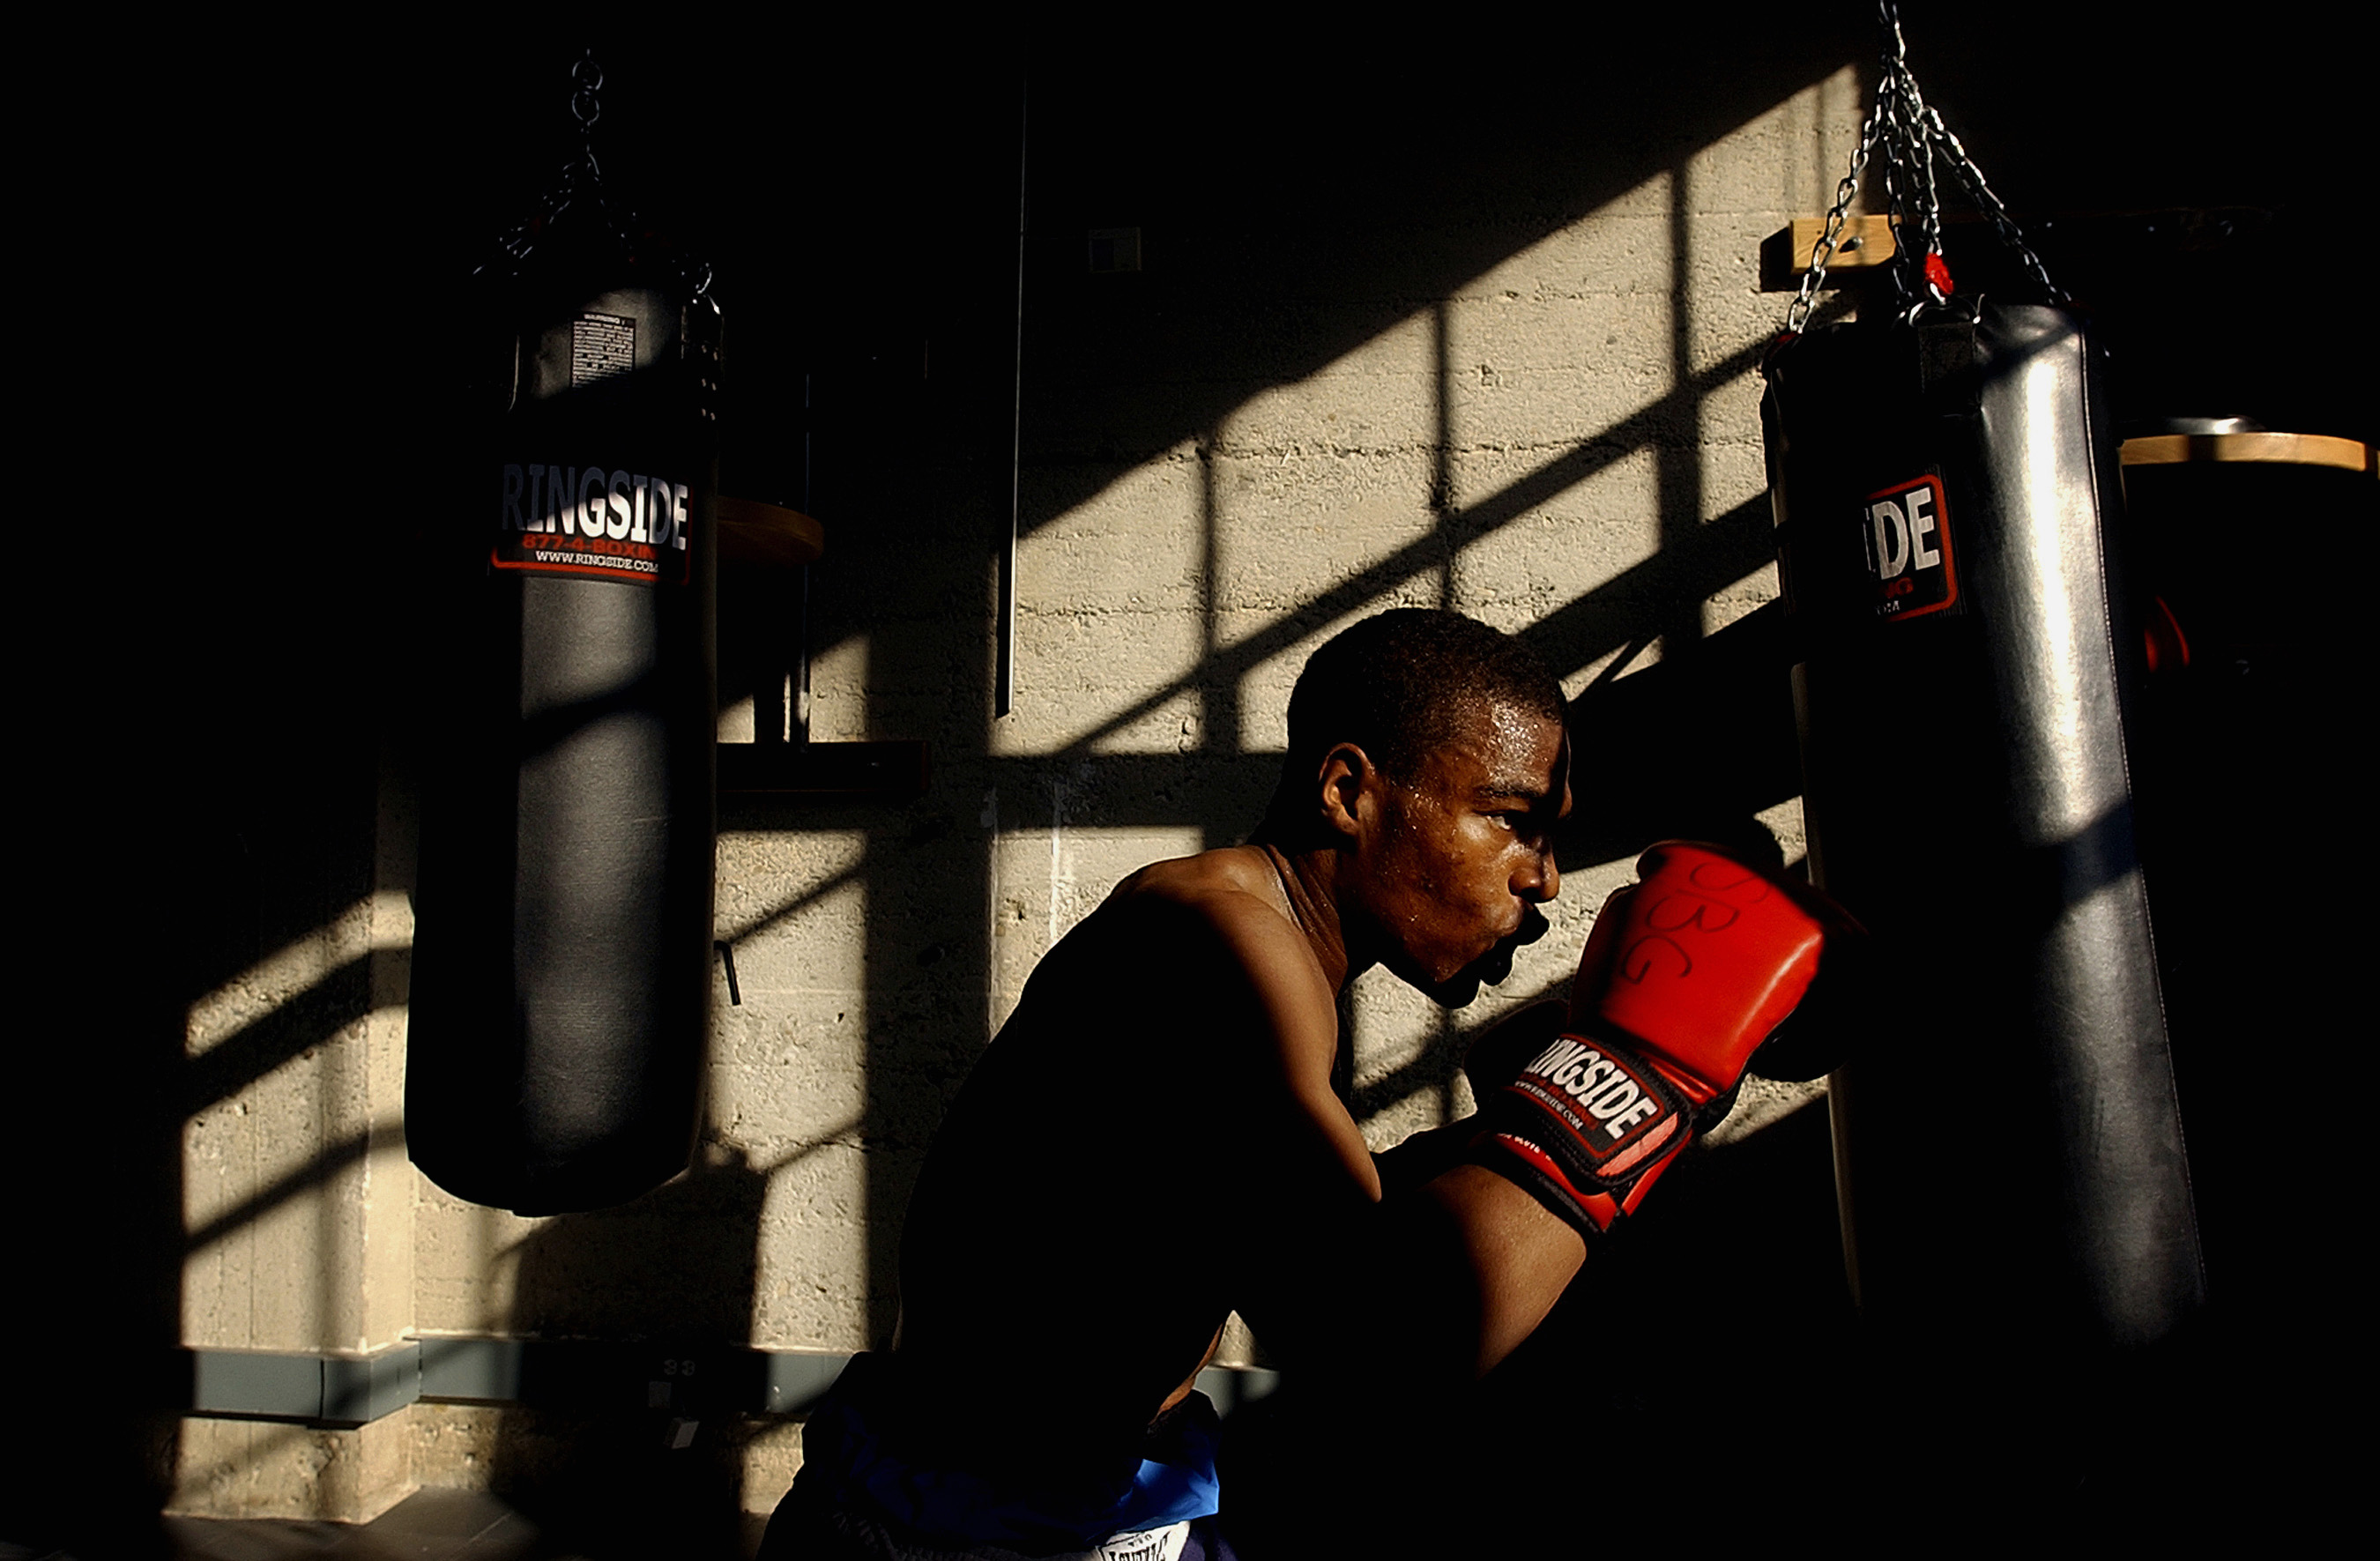 US Navy National team member, Mylin Wyche, 24, of Naval Base Ventura County works out on a heavy bag at Sylva's Boxing Gym in Ventura, Colo.  Photo by Matt McClain